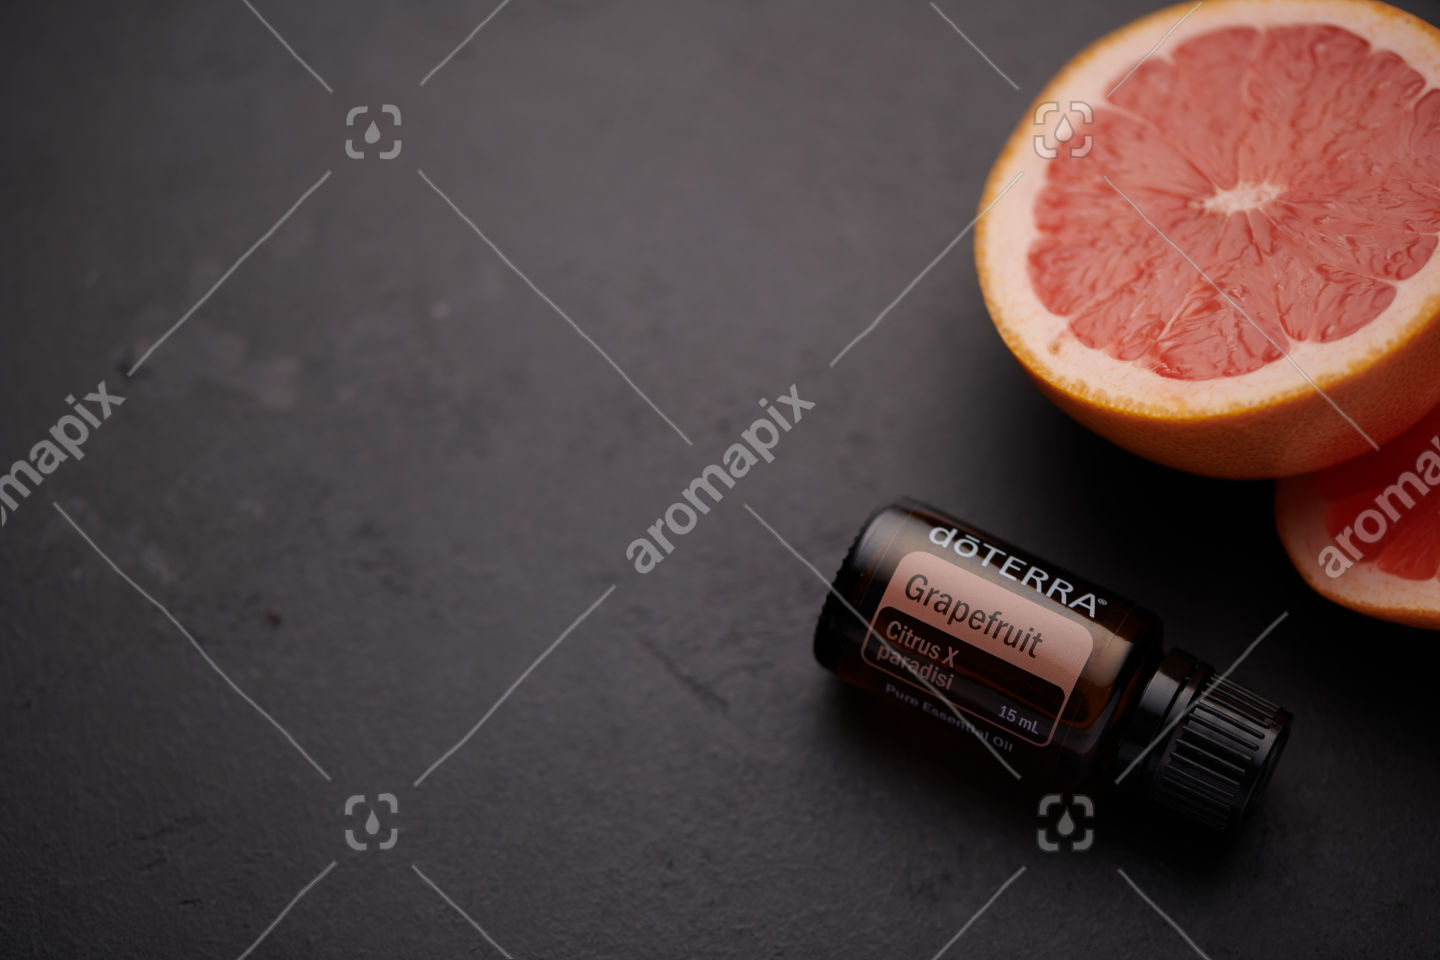 doTERRA Grapefruit product and grapefruit pieces on black background.